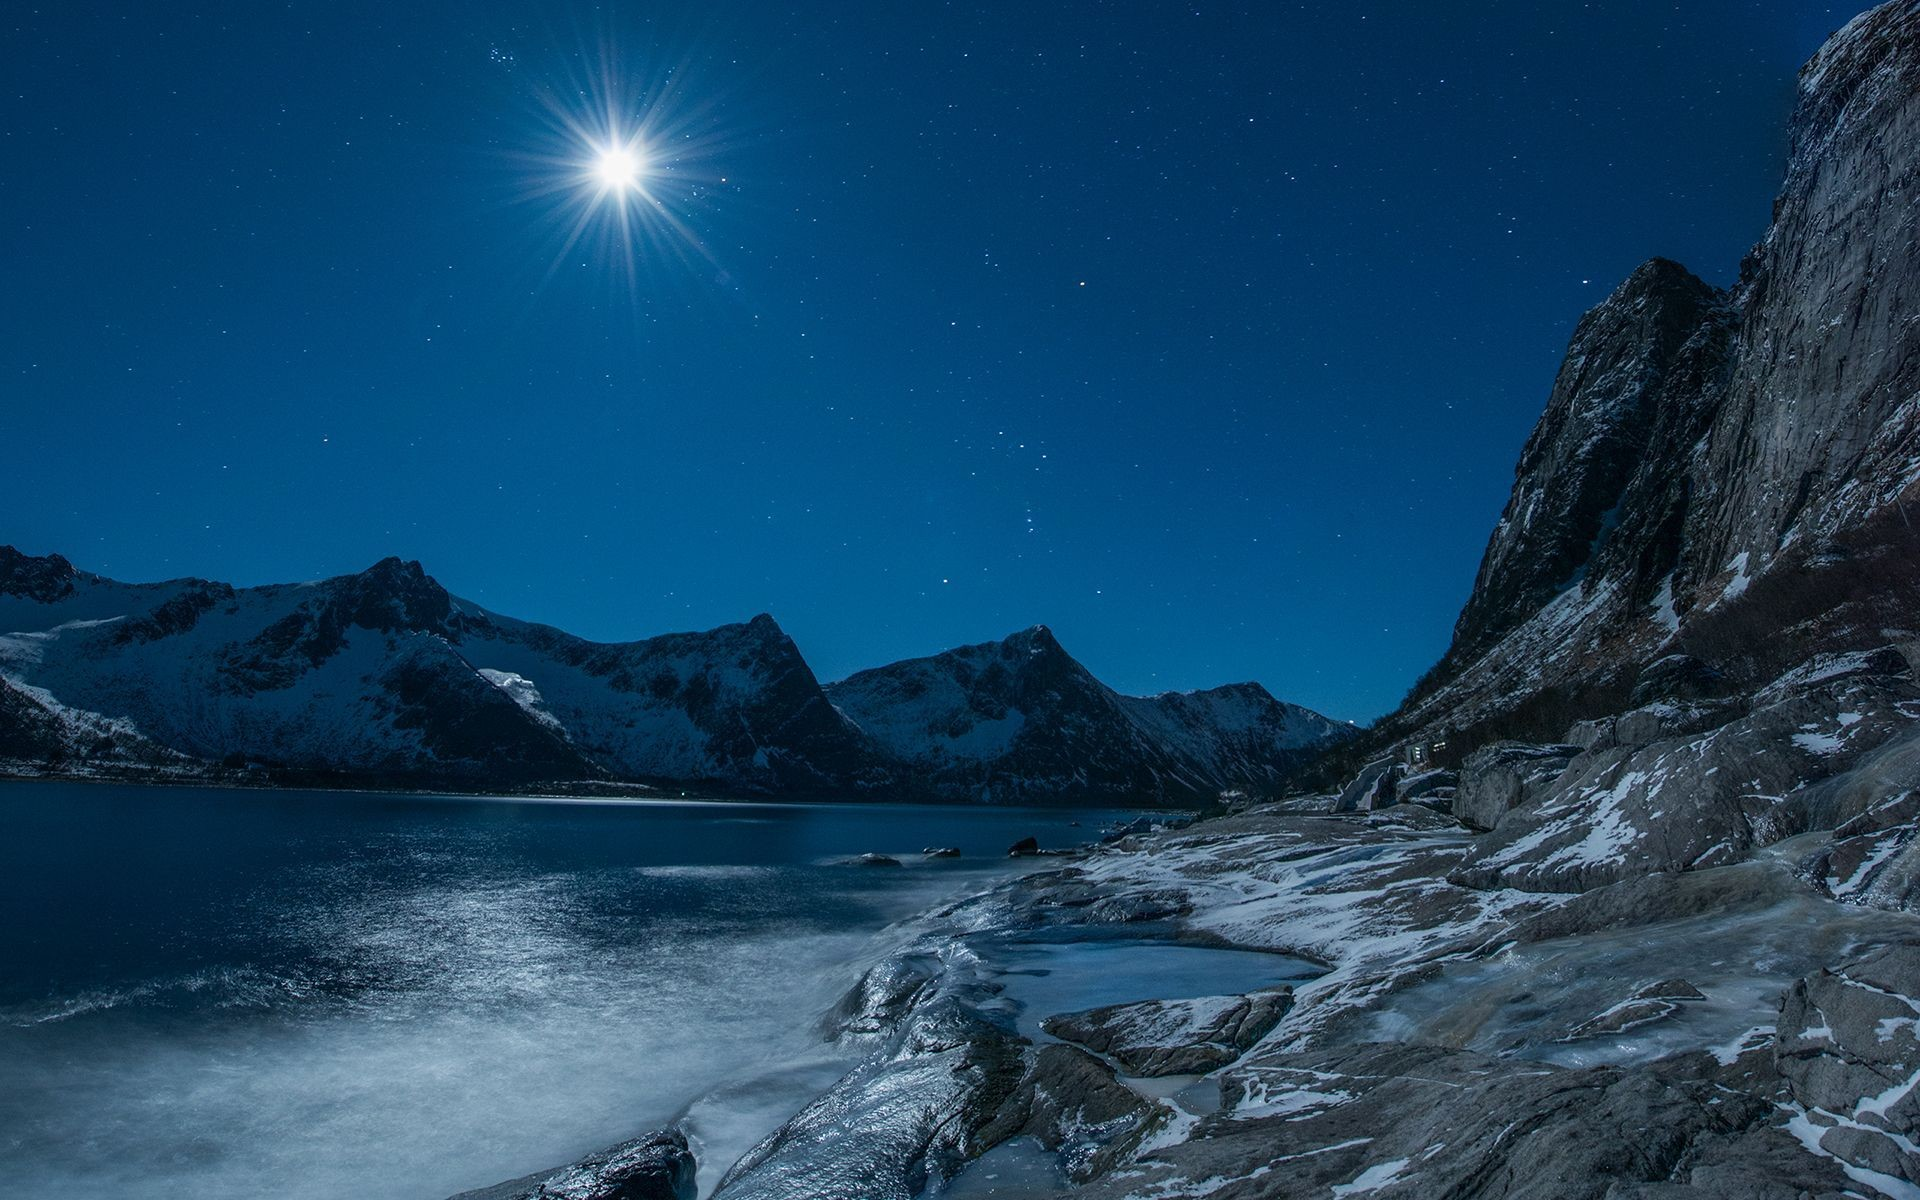 Tropical Waves Sky Mountains Clouds Island Moon Night: Moonlight Night Wallpaper (59+ Images